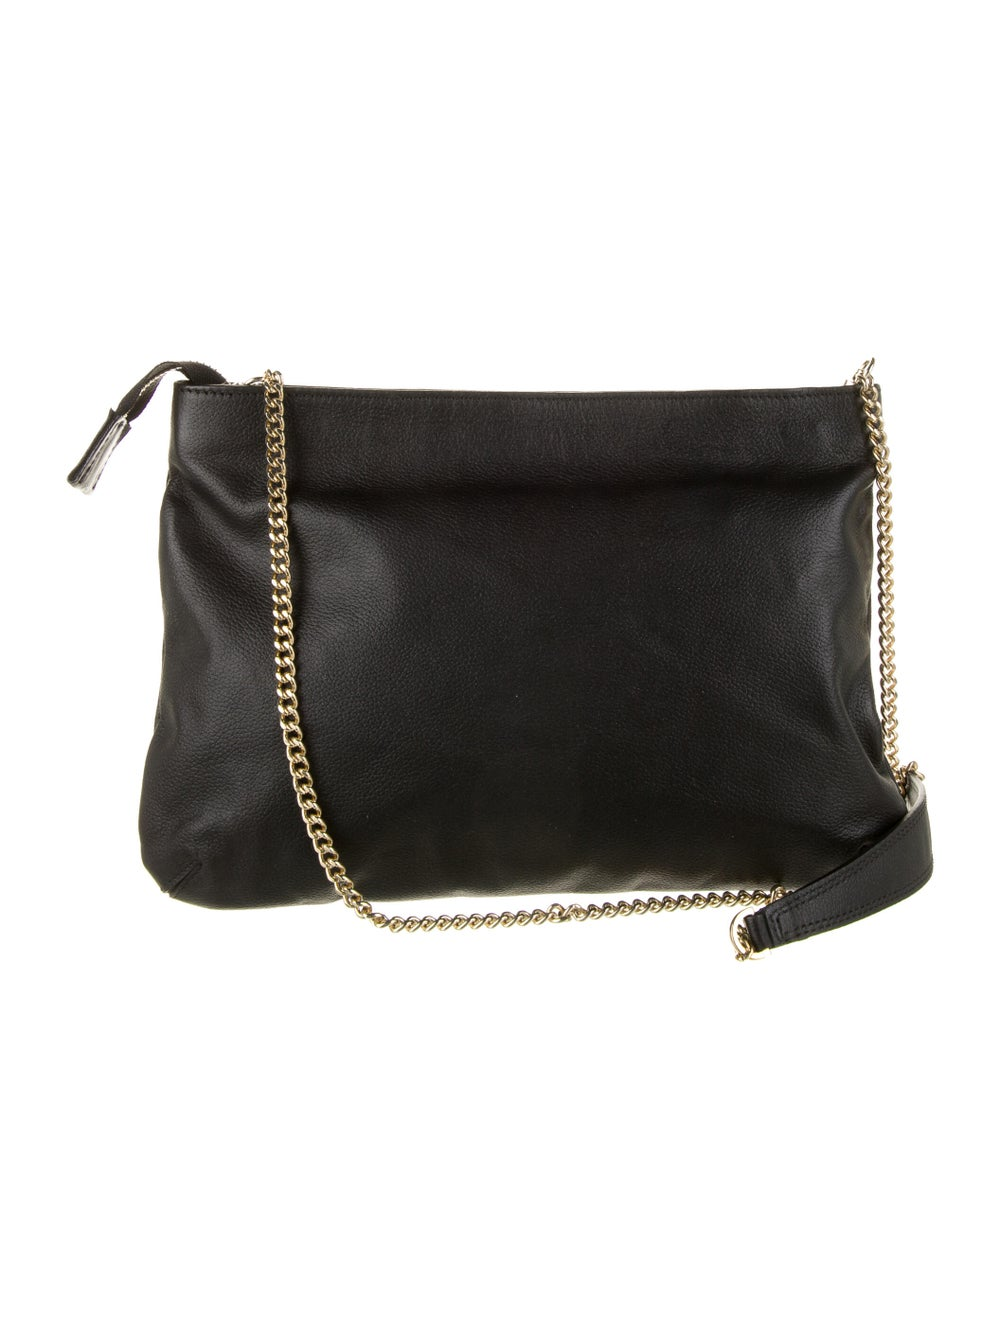 Tous Leather Crossbody Bag Black - image 4